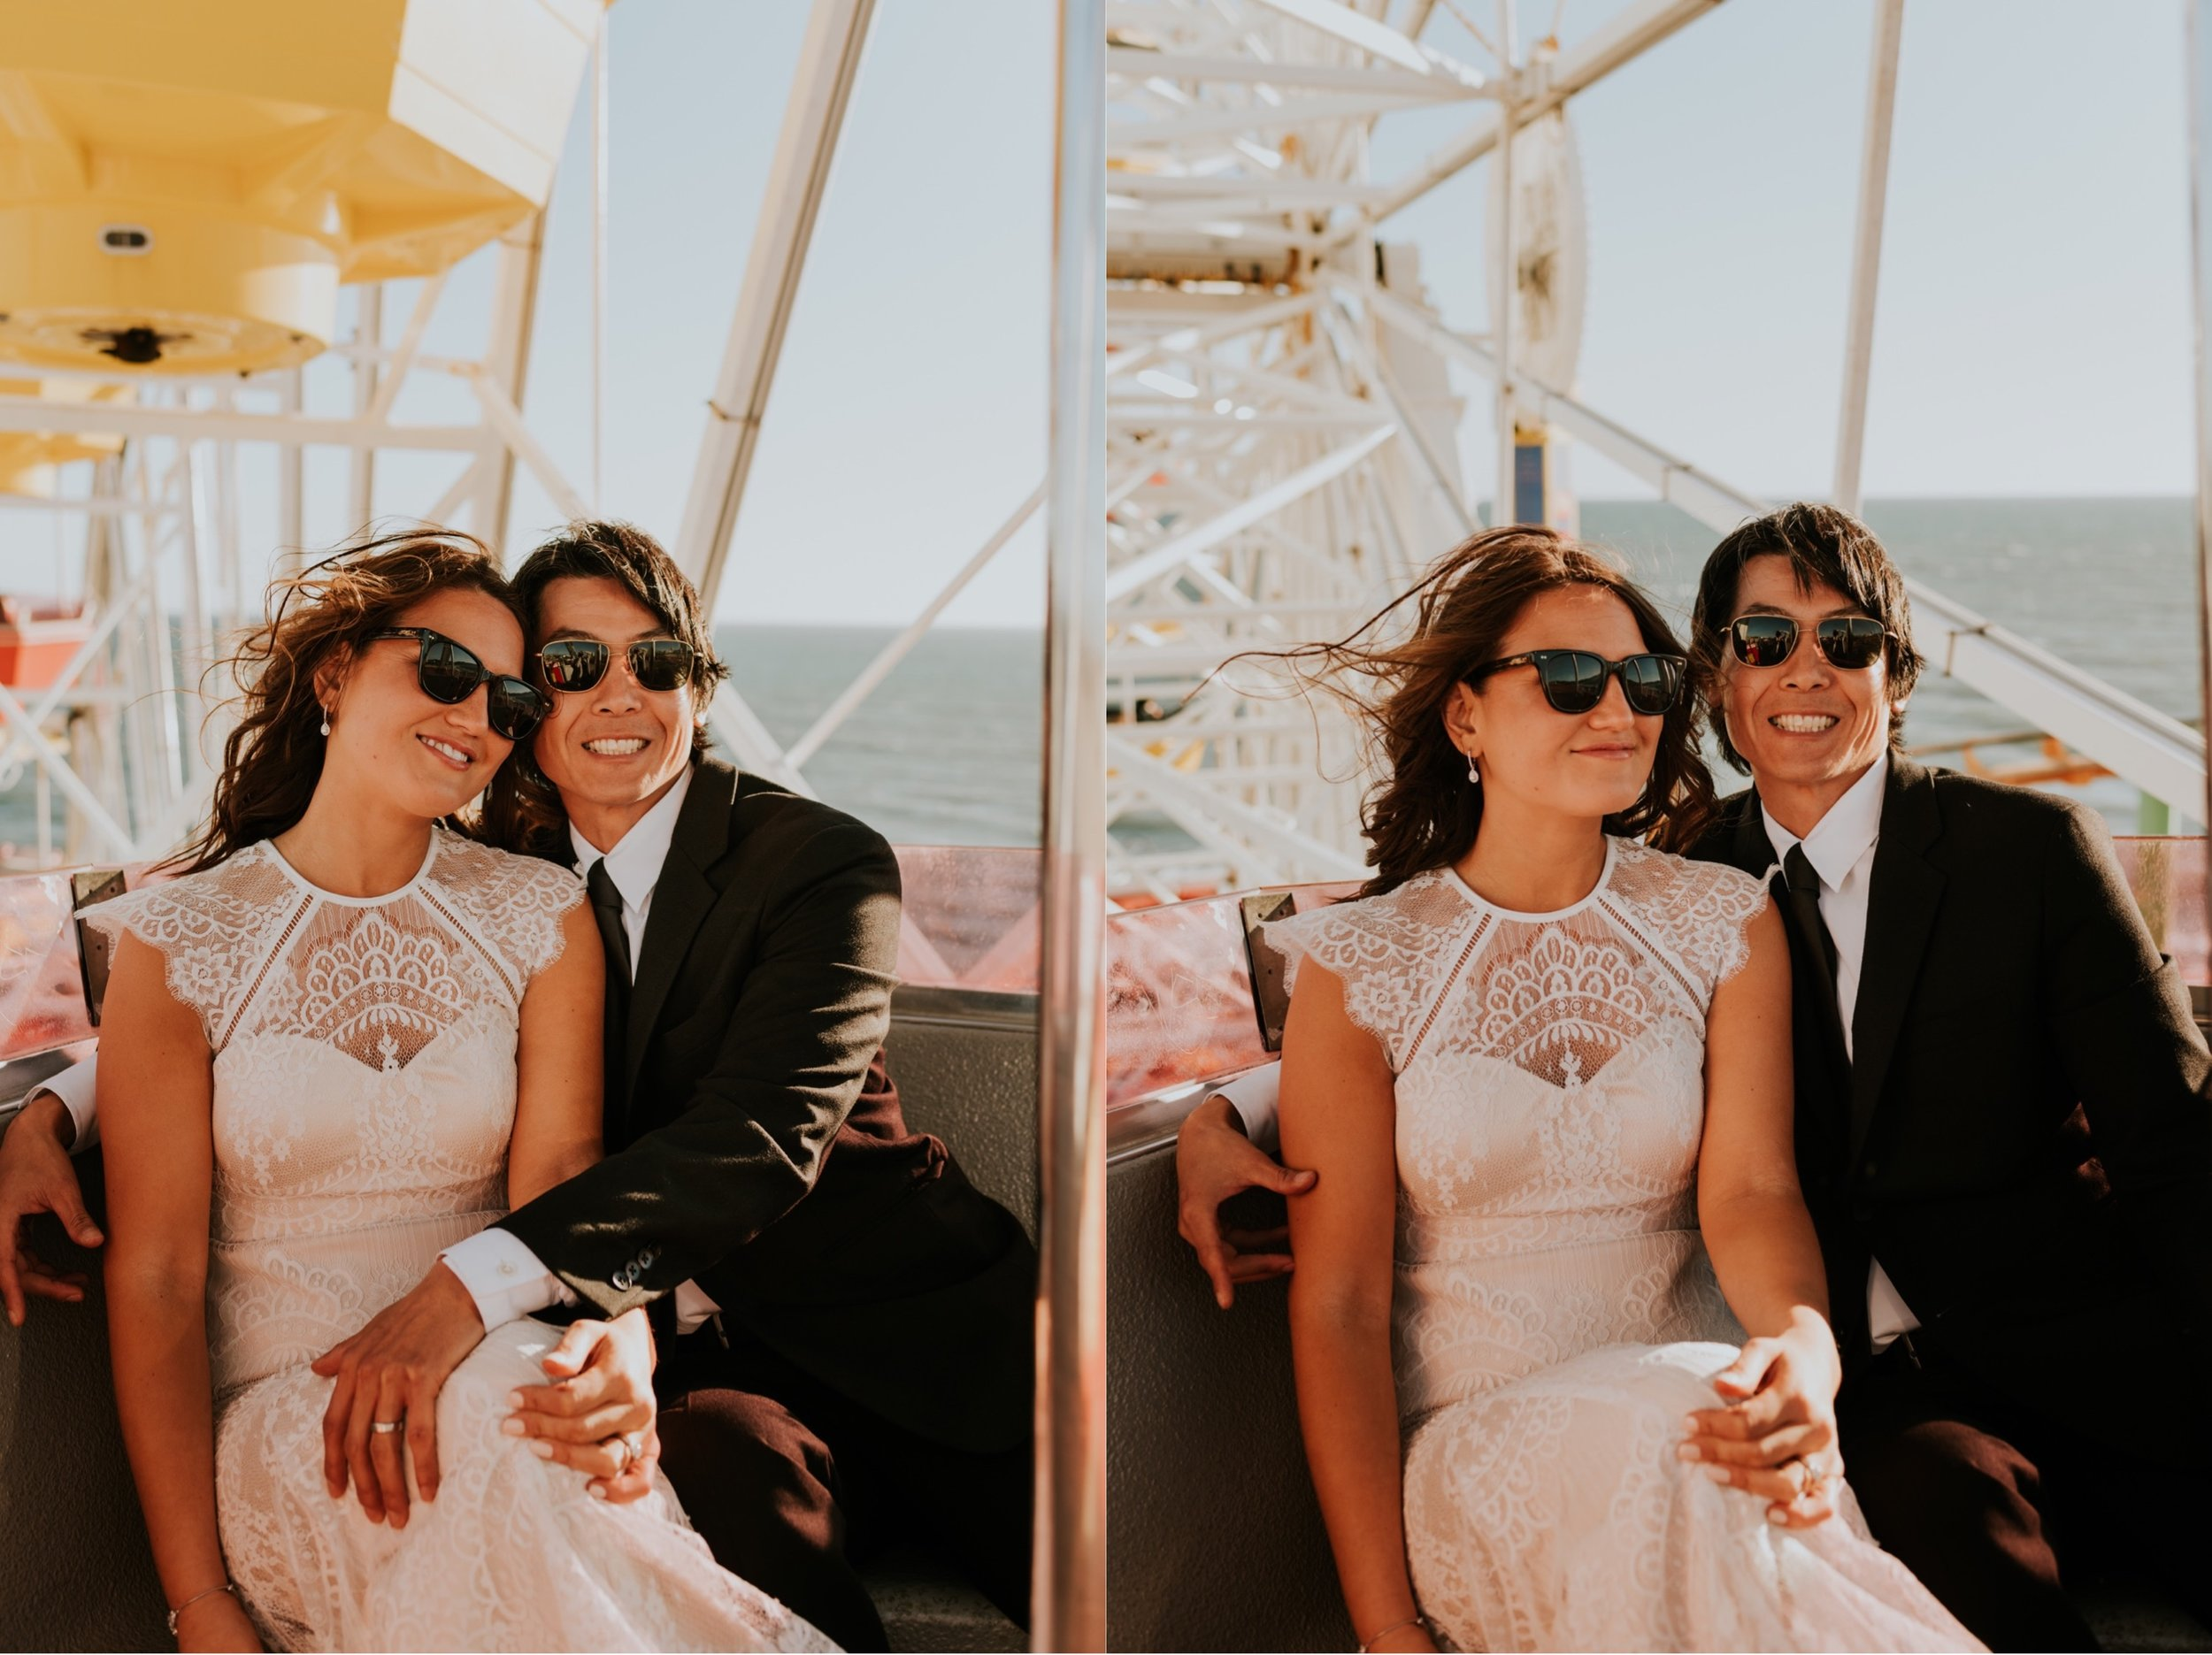 Santa Monica Pier Wedding Photos | Carrie Rogers Photography | Bride and Groom on Ferris Wheel |  Santa Monica Beach Wedding | Beverly Hills Elopement | Beverly Hills Wedding